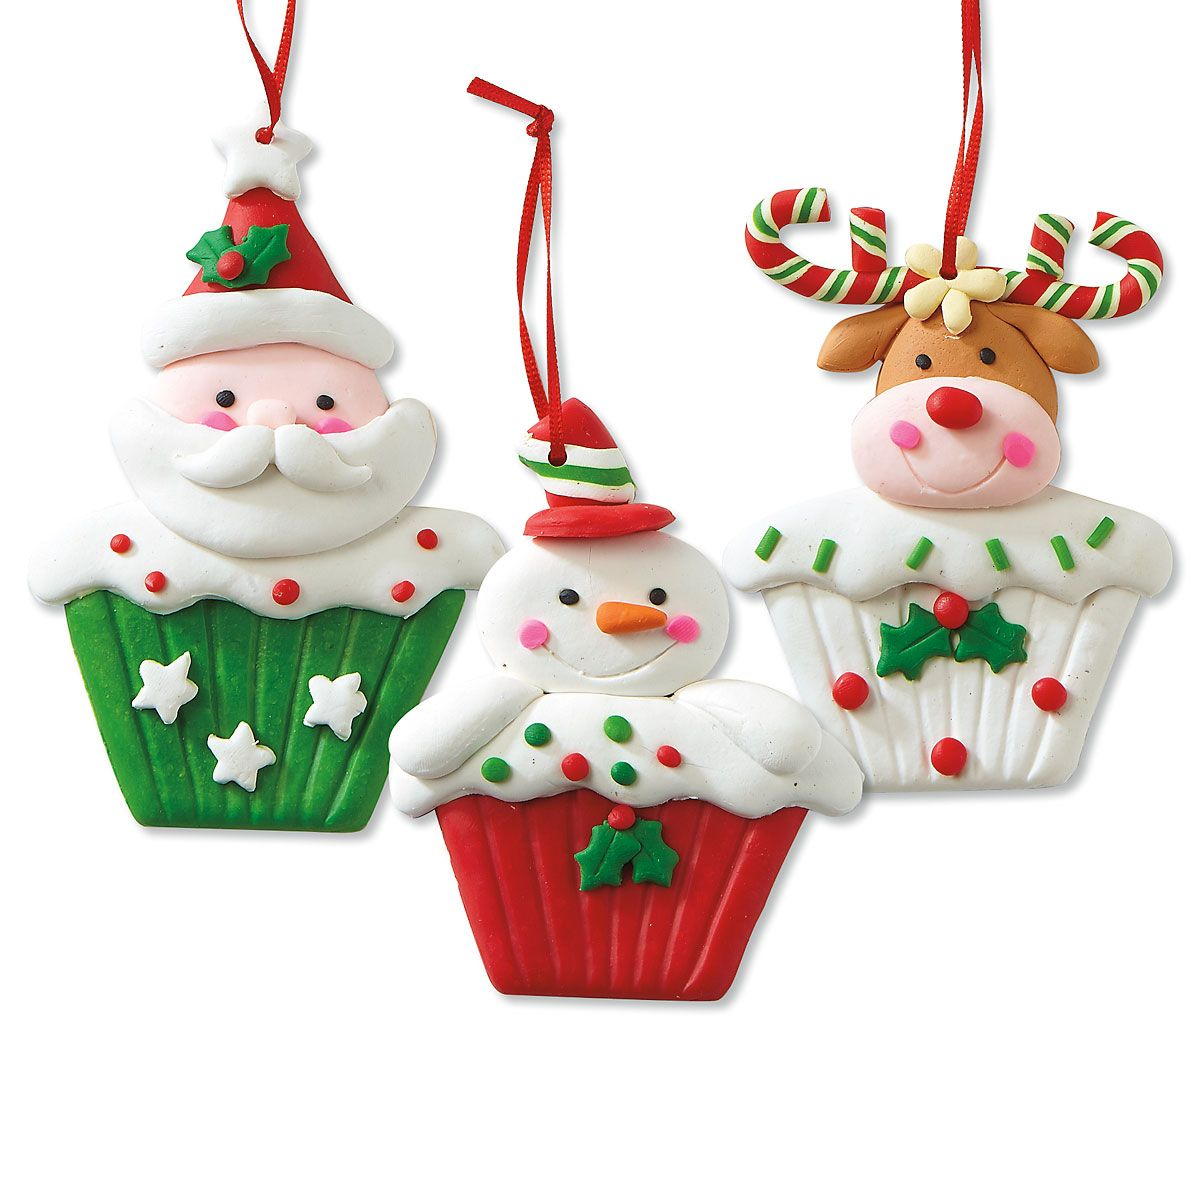 Cupcake Character Christmas Ornament | Current Catalog